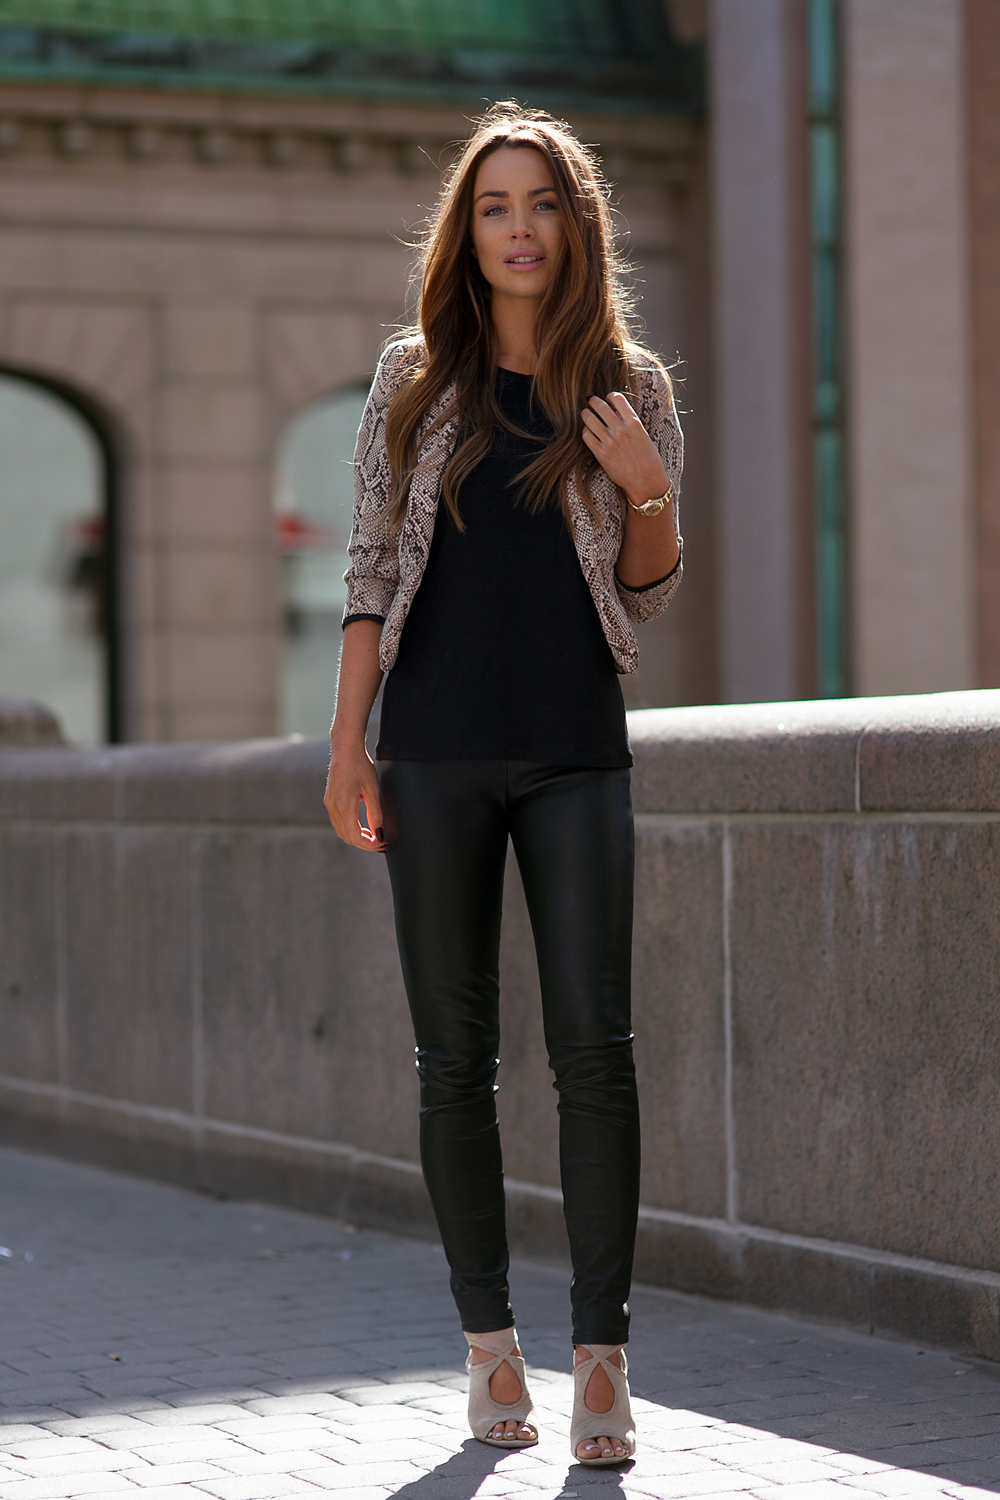 Street Style 2015 Johanna Olsson Is Wearing A Pair Of David Lerner Leather Pants With A Snake